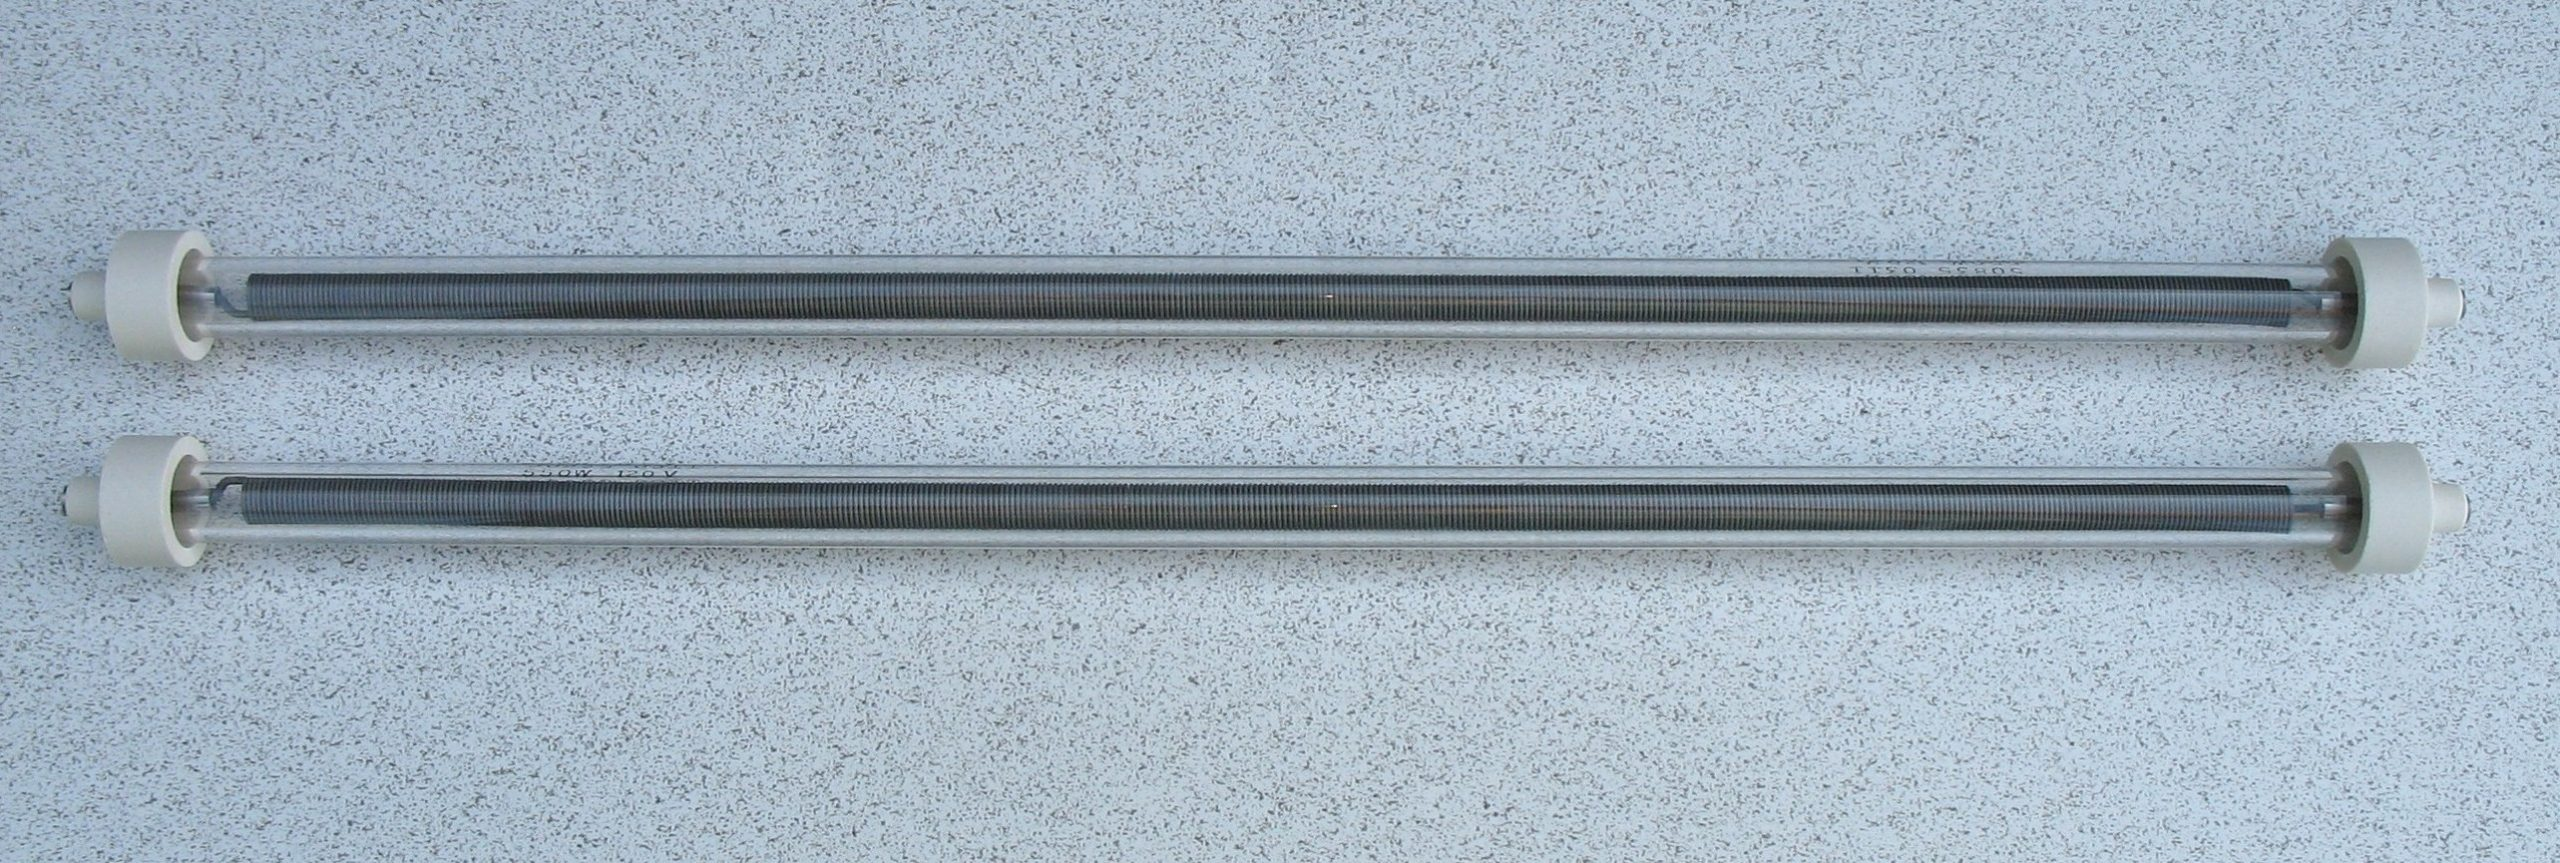 HEAT-N-STRIP™ Heating Elements